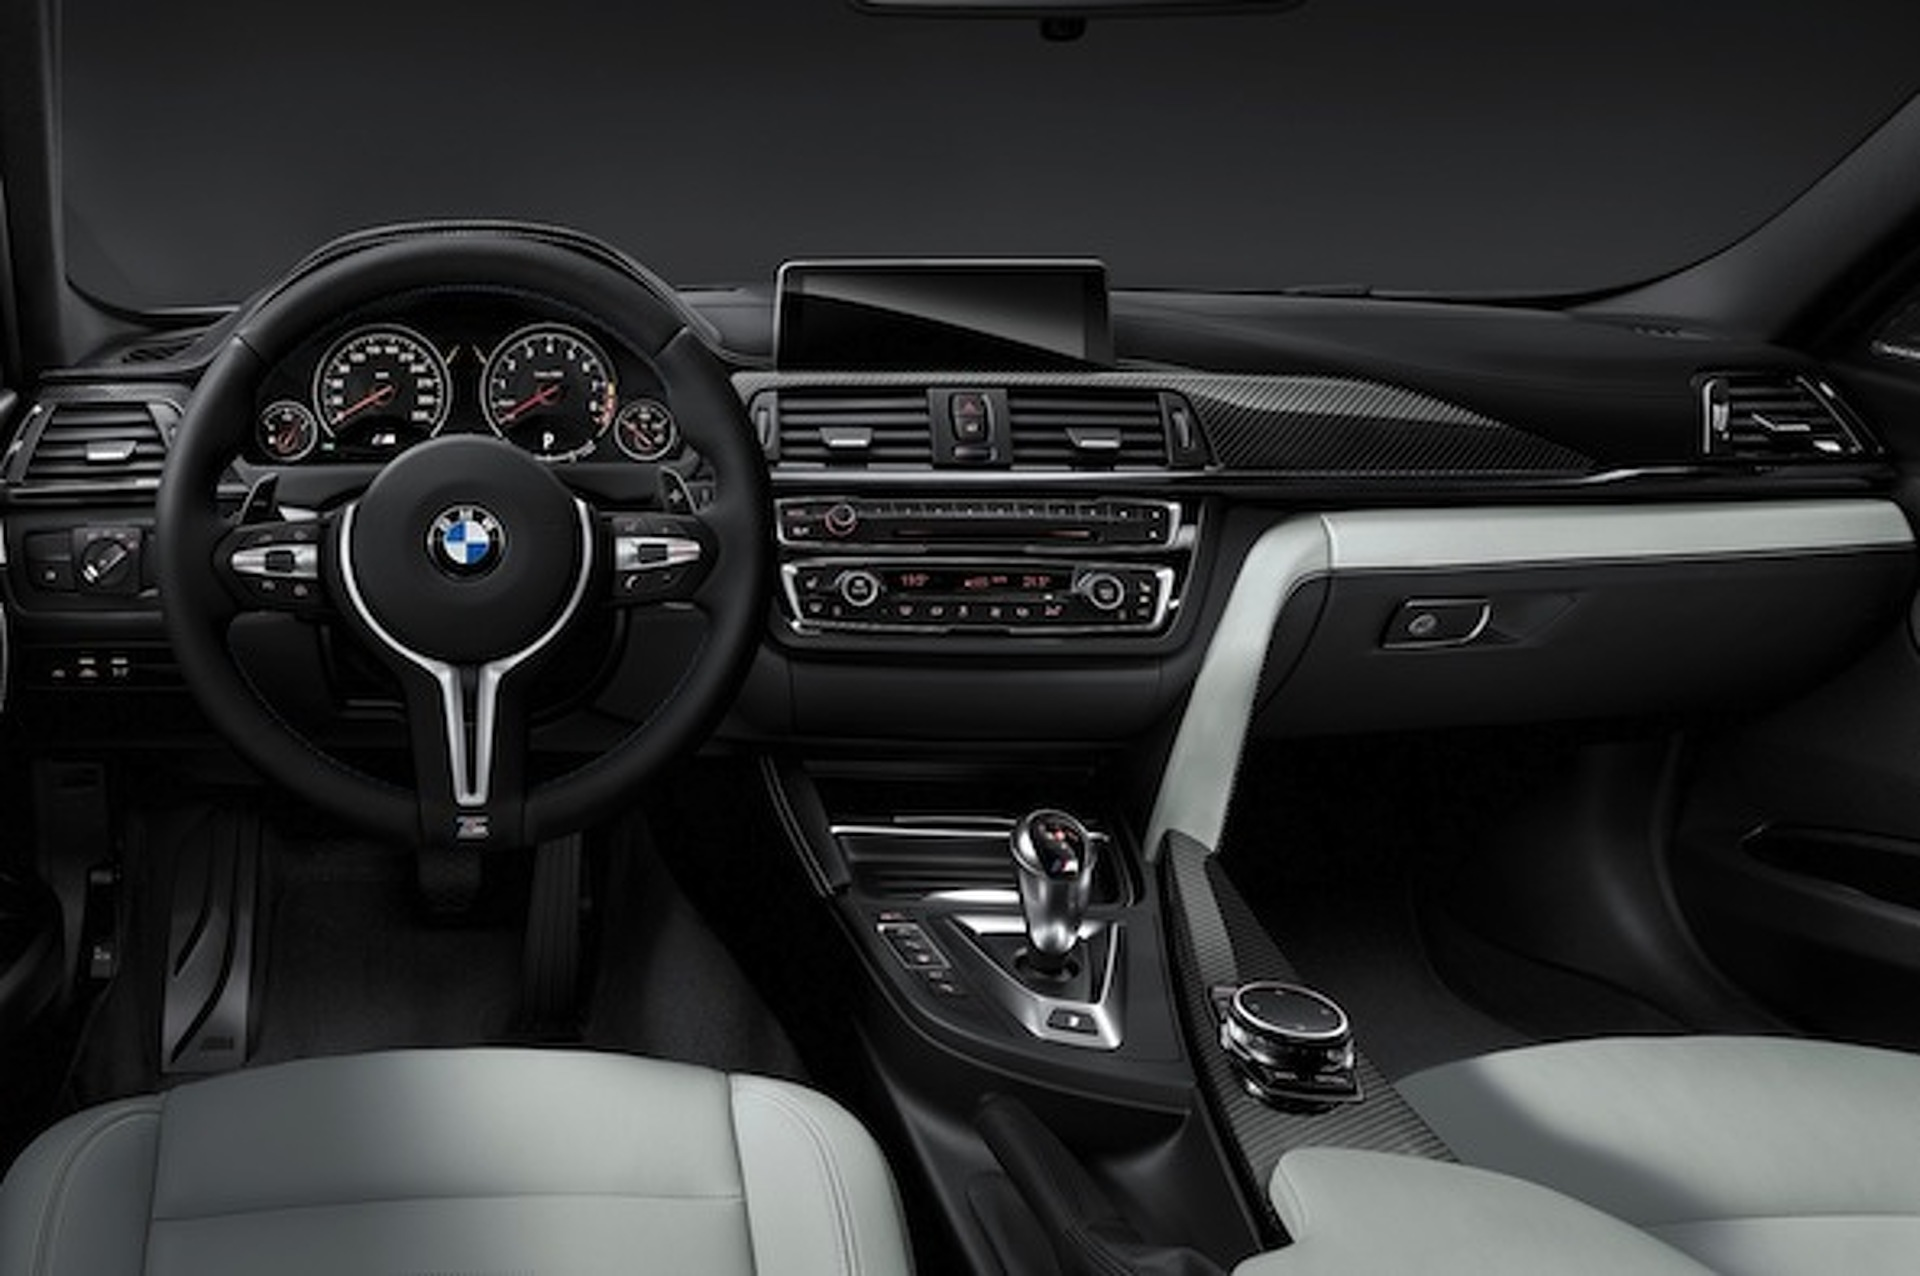 Unveiled: 2015 BMW M3 and M4 Show Off High-Performance Goods